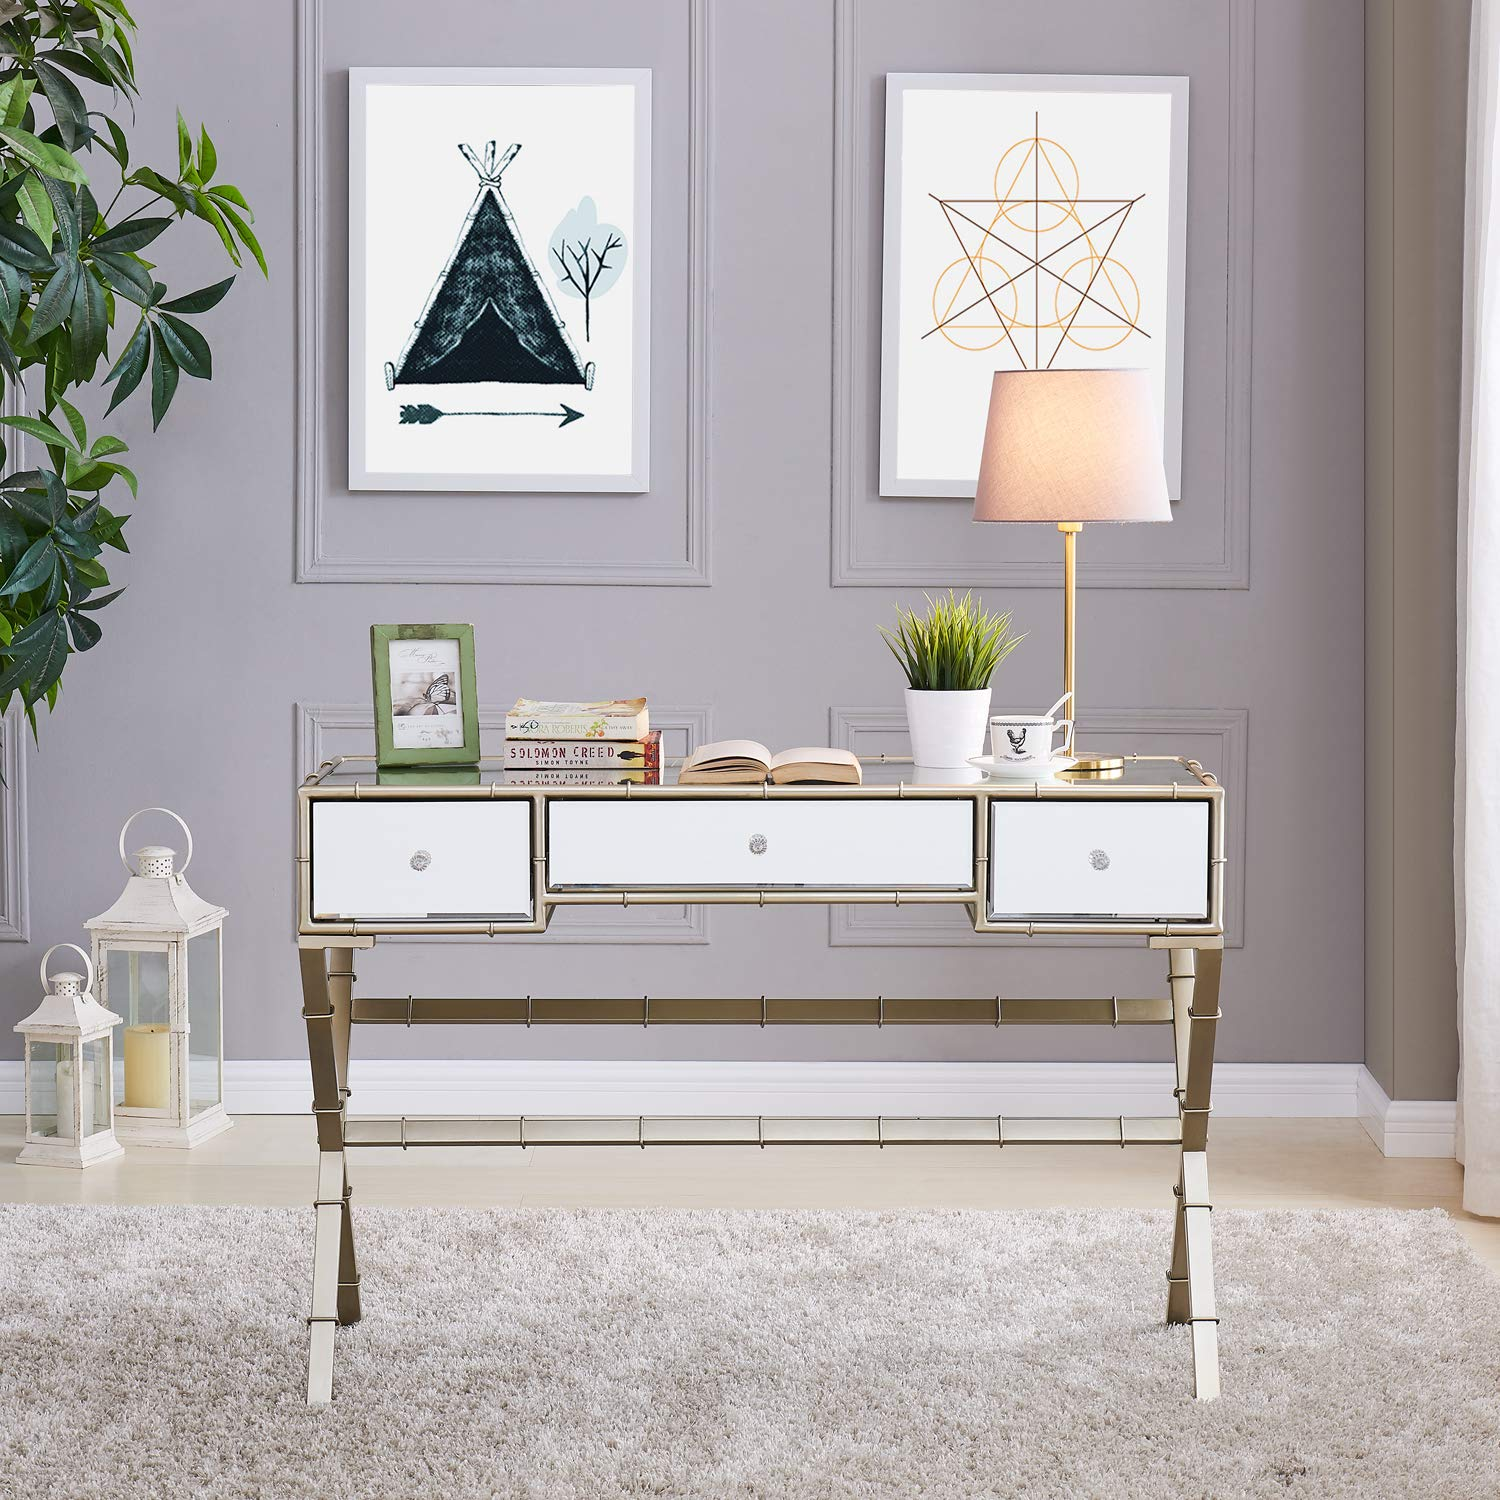 Southern Enterprises Lienz Hollywood Regency Mirrored Console Table, 17.5 X 31, Metallic